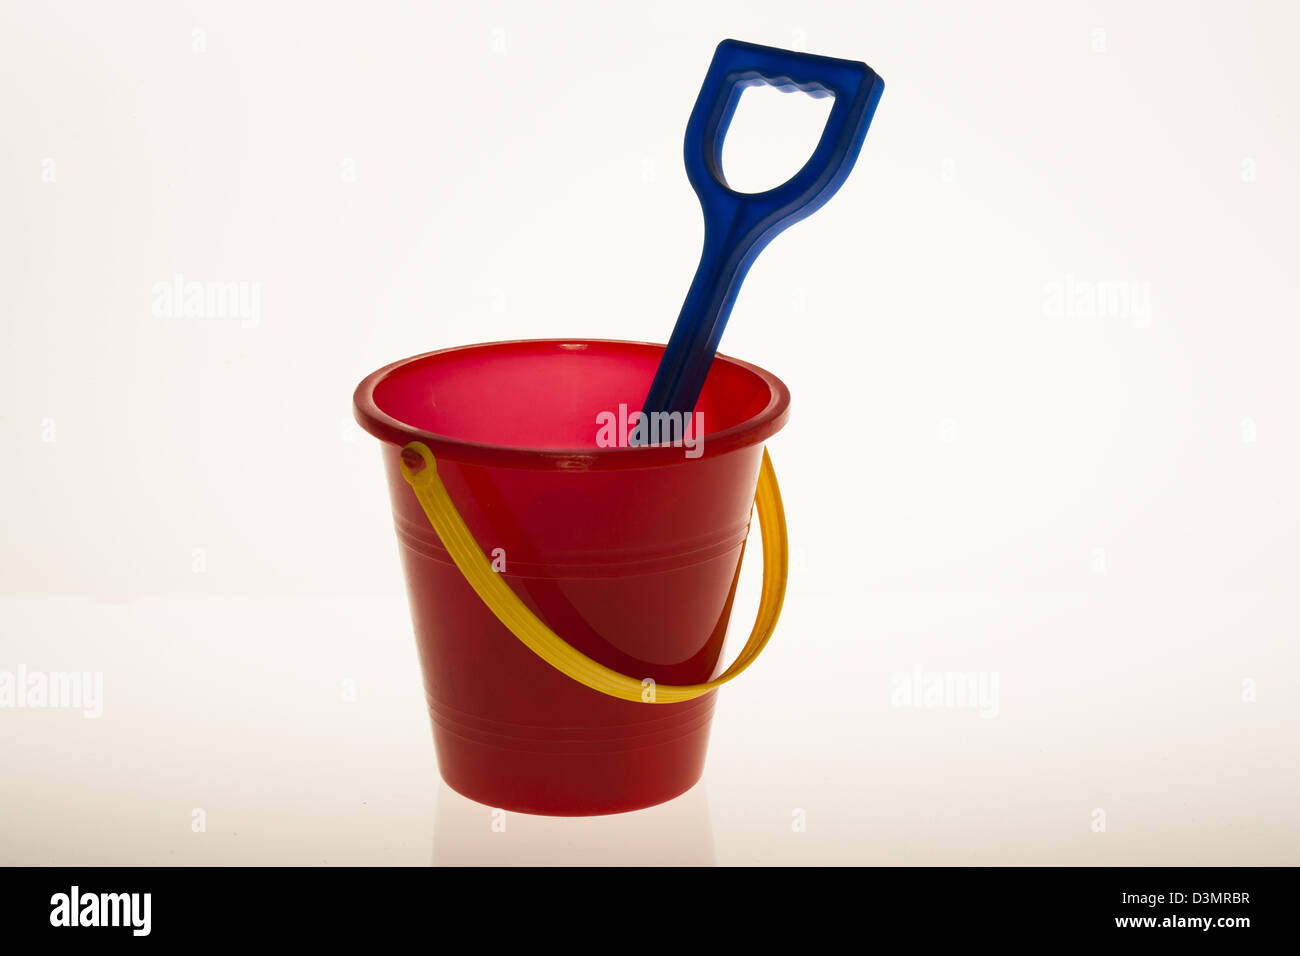 Uncategorized Toy Pail bucket shovel sand pail and isolated plastic red toy white background vacations blue fun concepts ideas i